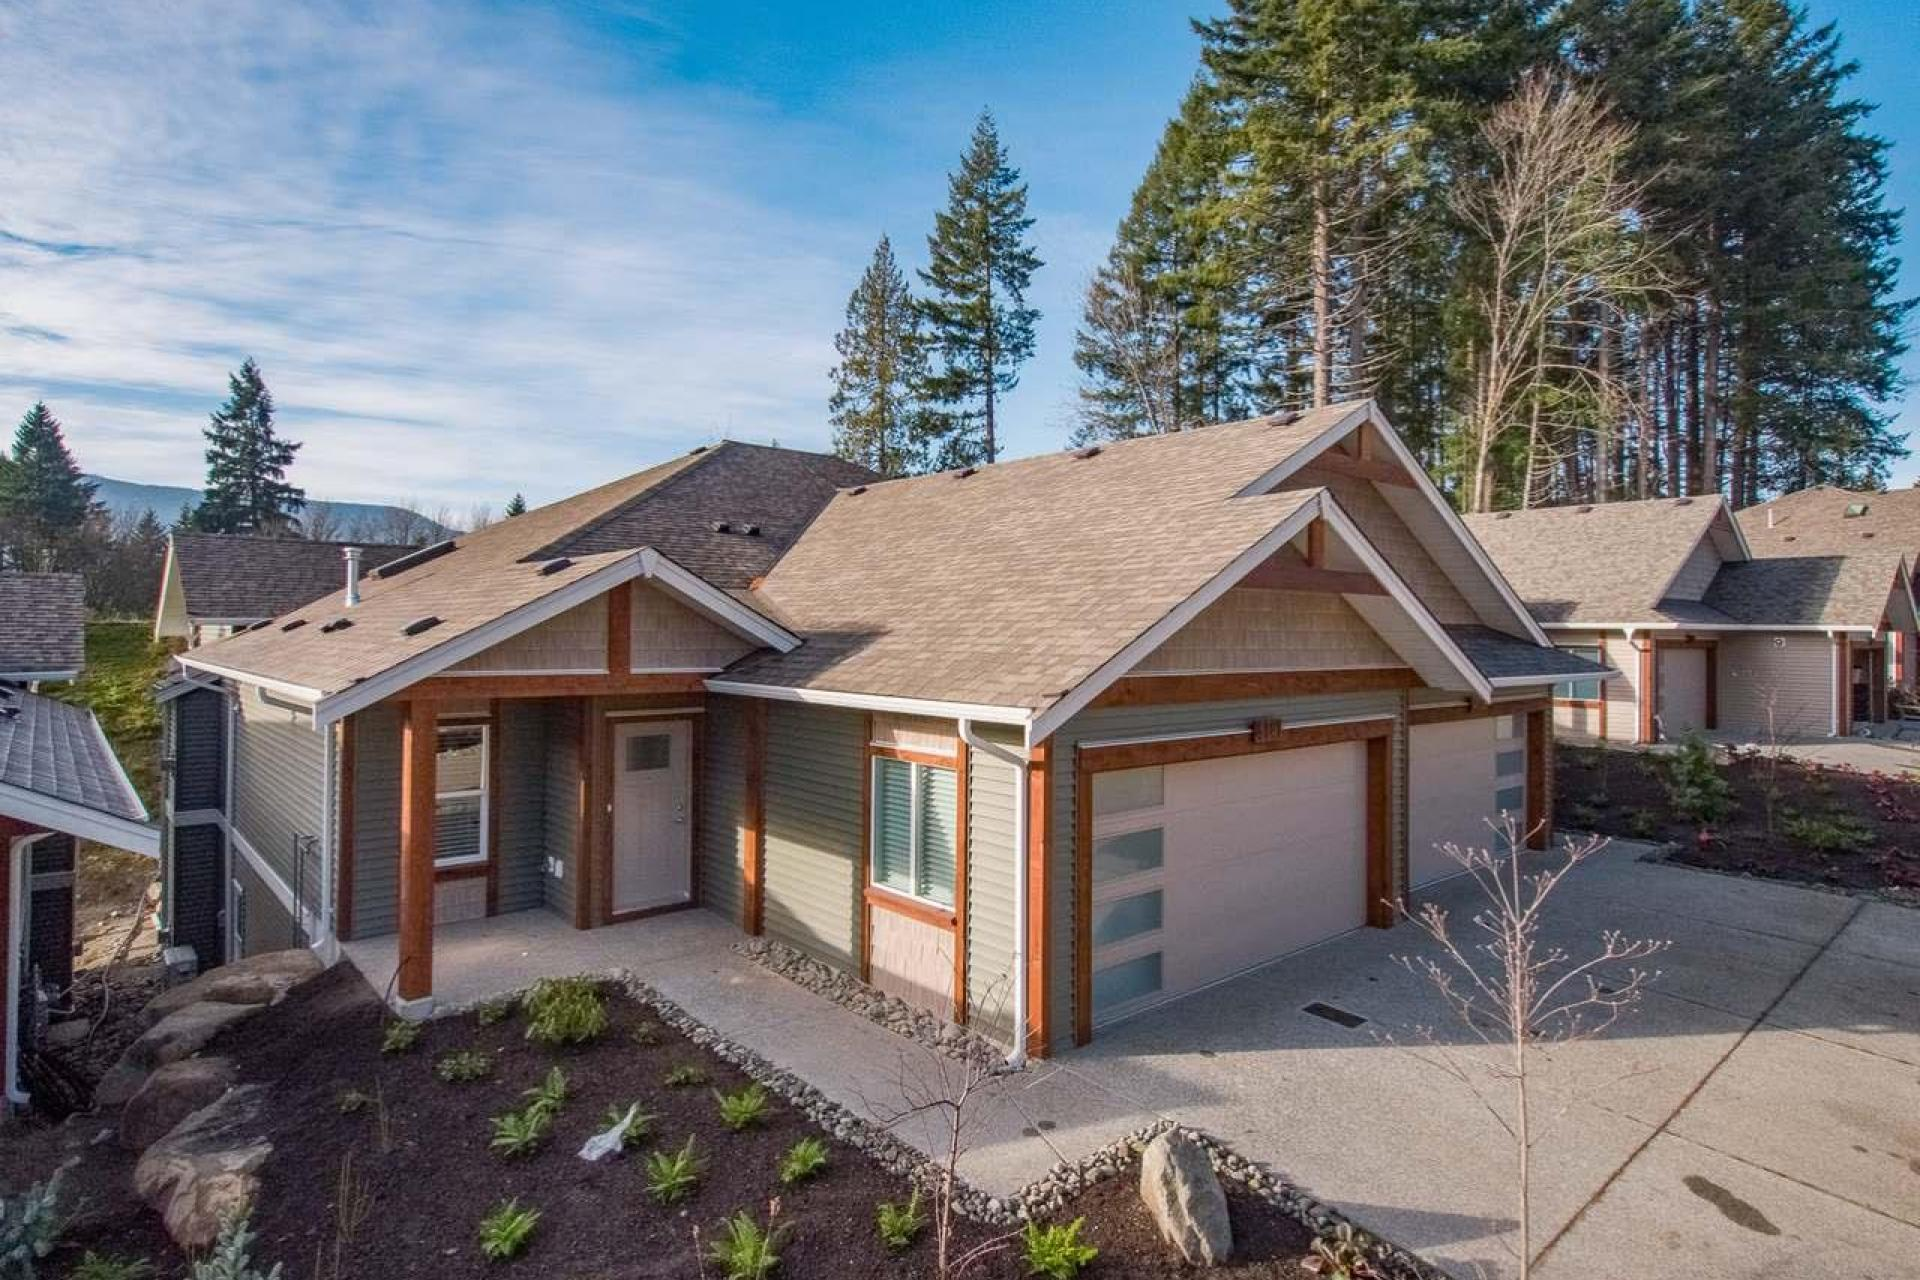 4159 Emerald Woods Place, Diver Lake, Nanaimo